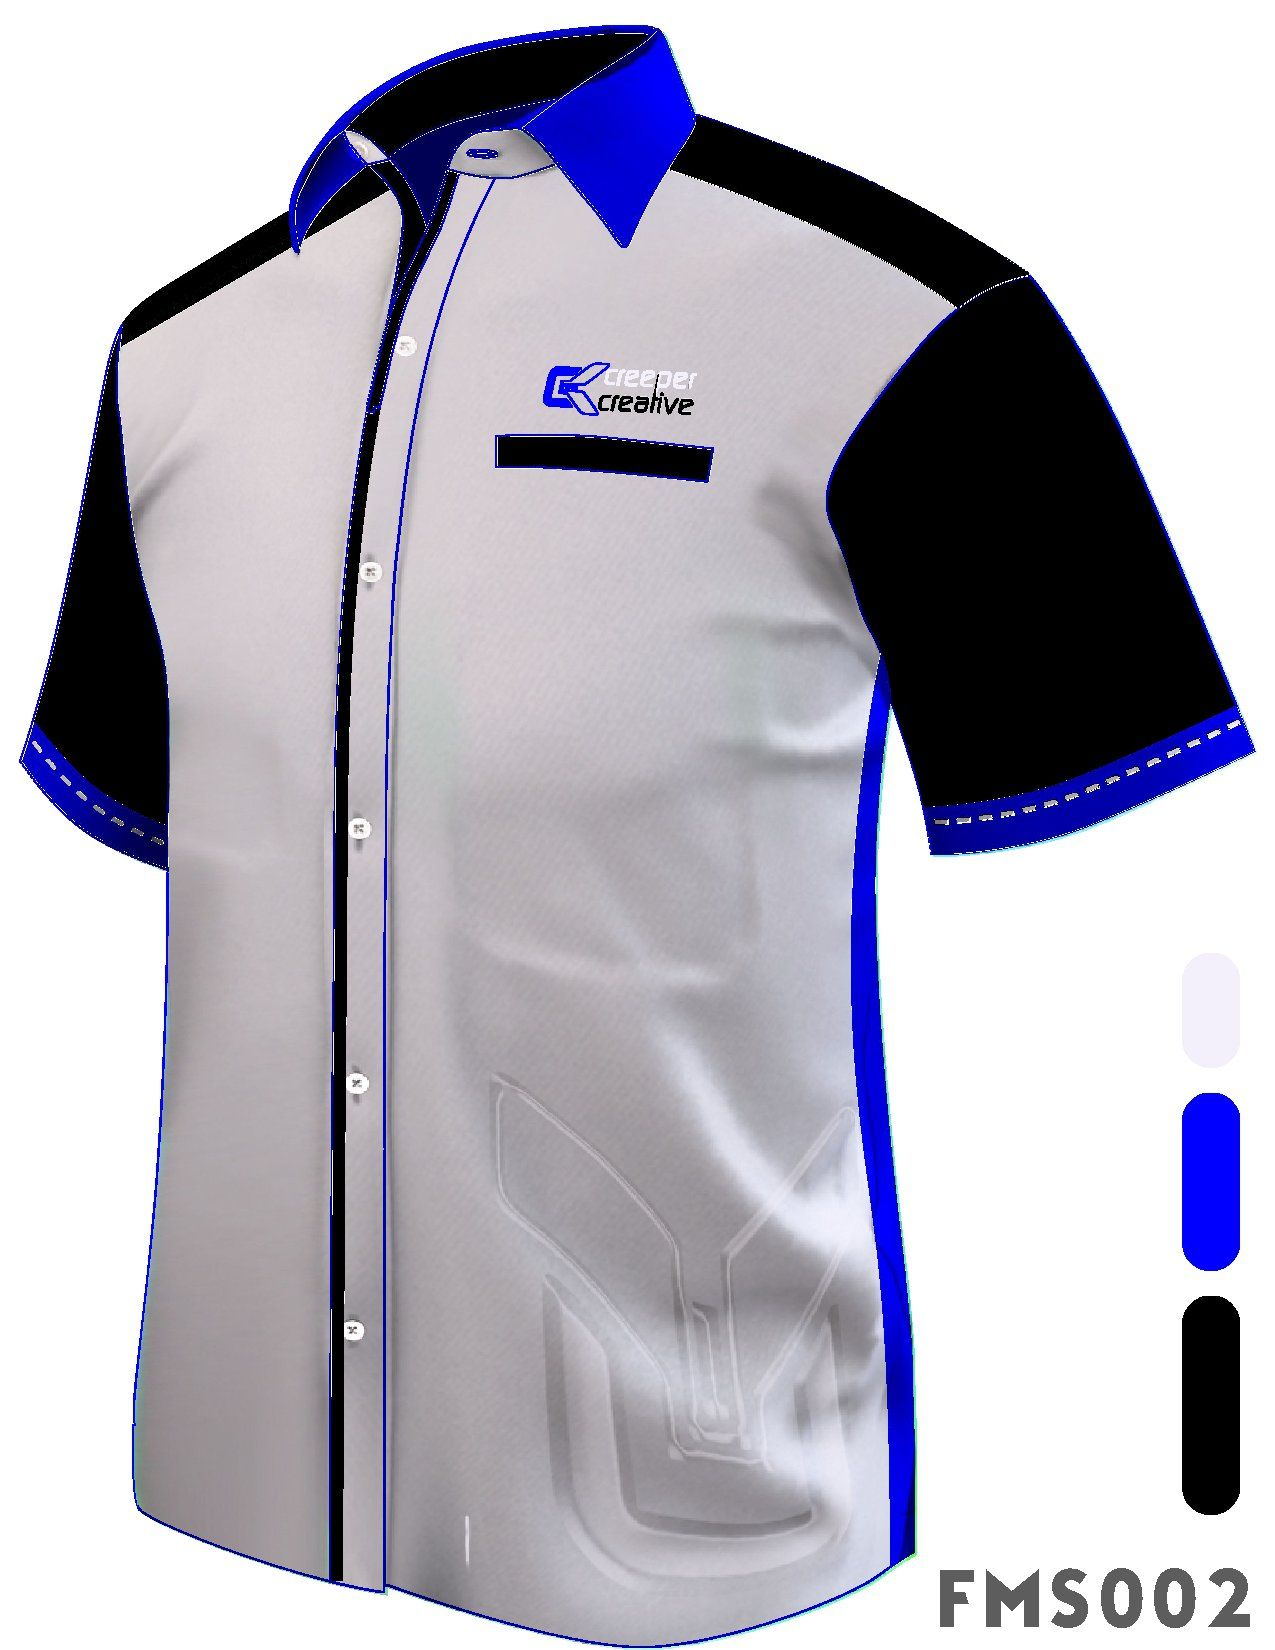 66a7f26a6 Design Corporate Apparel With Your Logo Online - No Set Up Design Fees. We  carry a variety of styles - polos, dress shirts, jackets, sweaters and ...